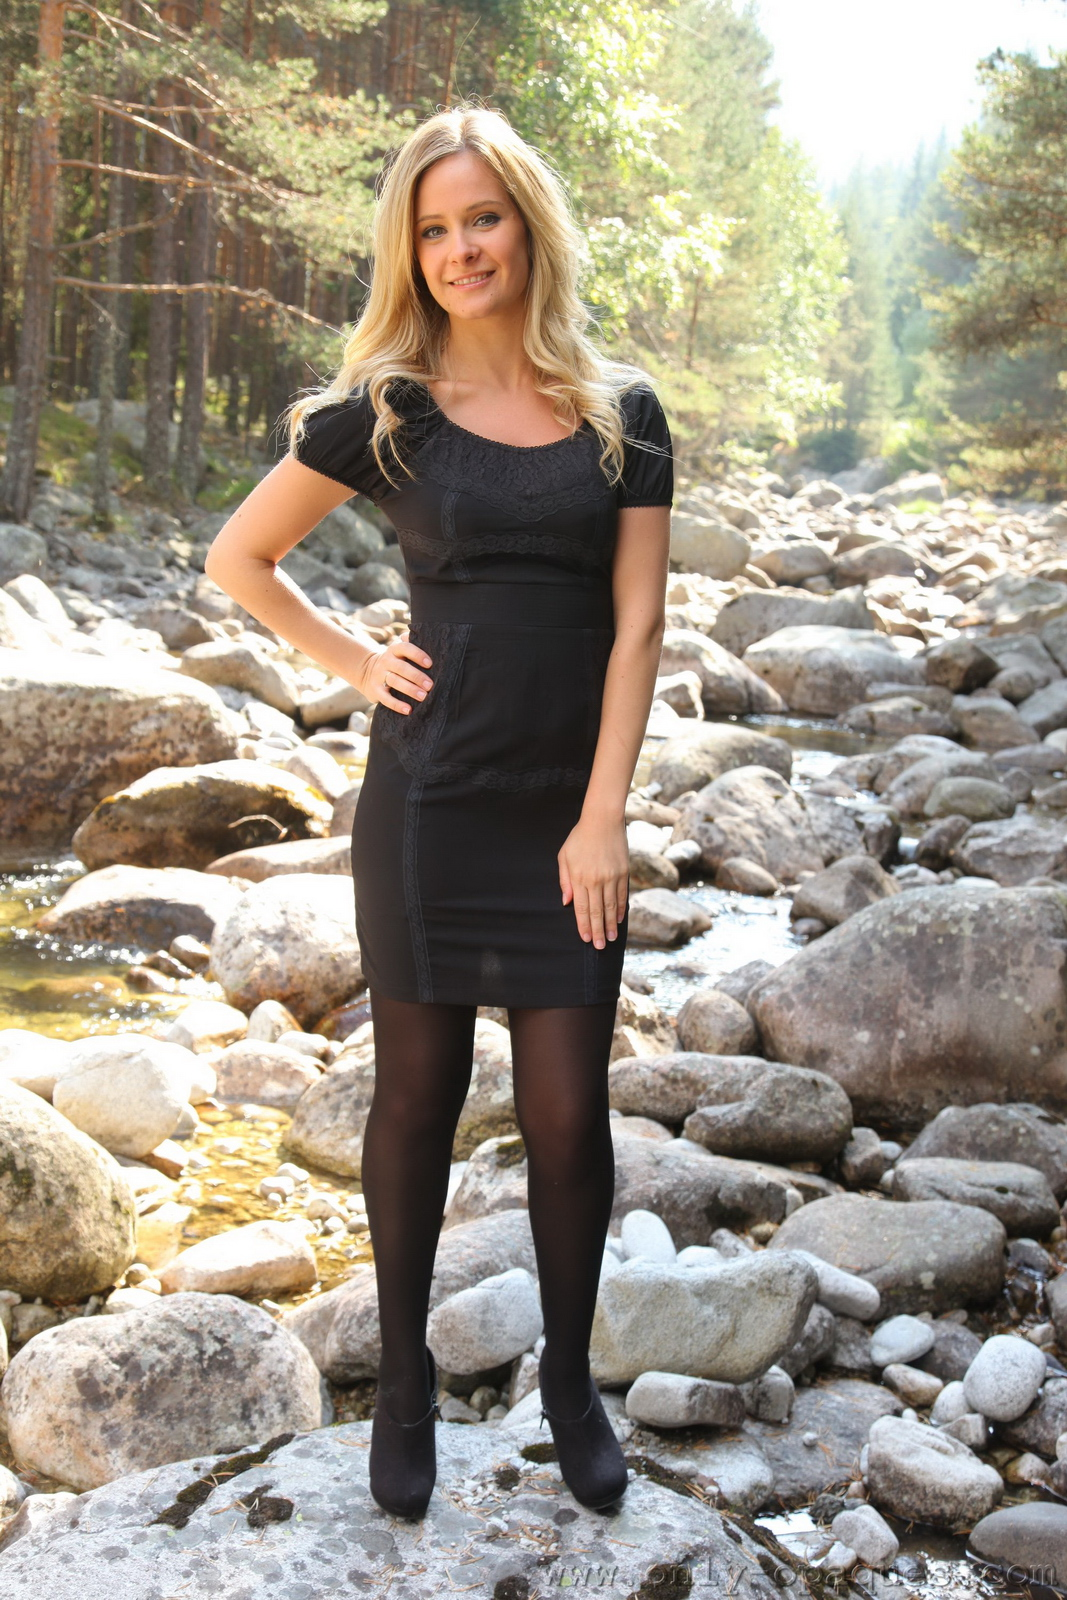 elle-richie-black-stockings-garters-outdoor-onlyopaques-01